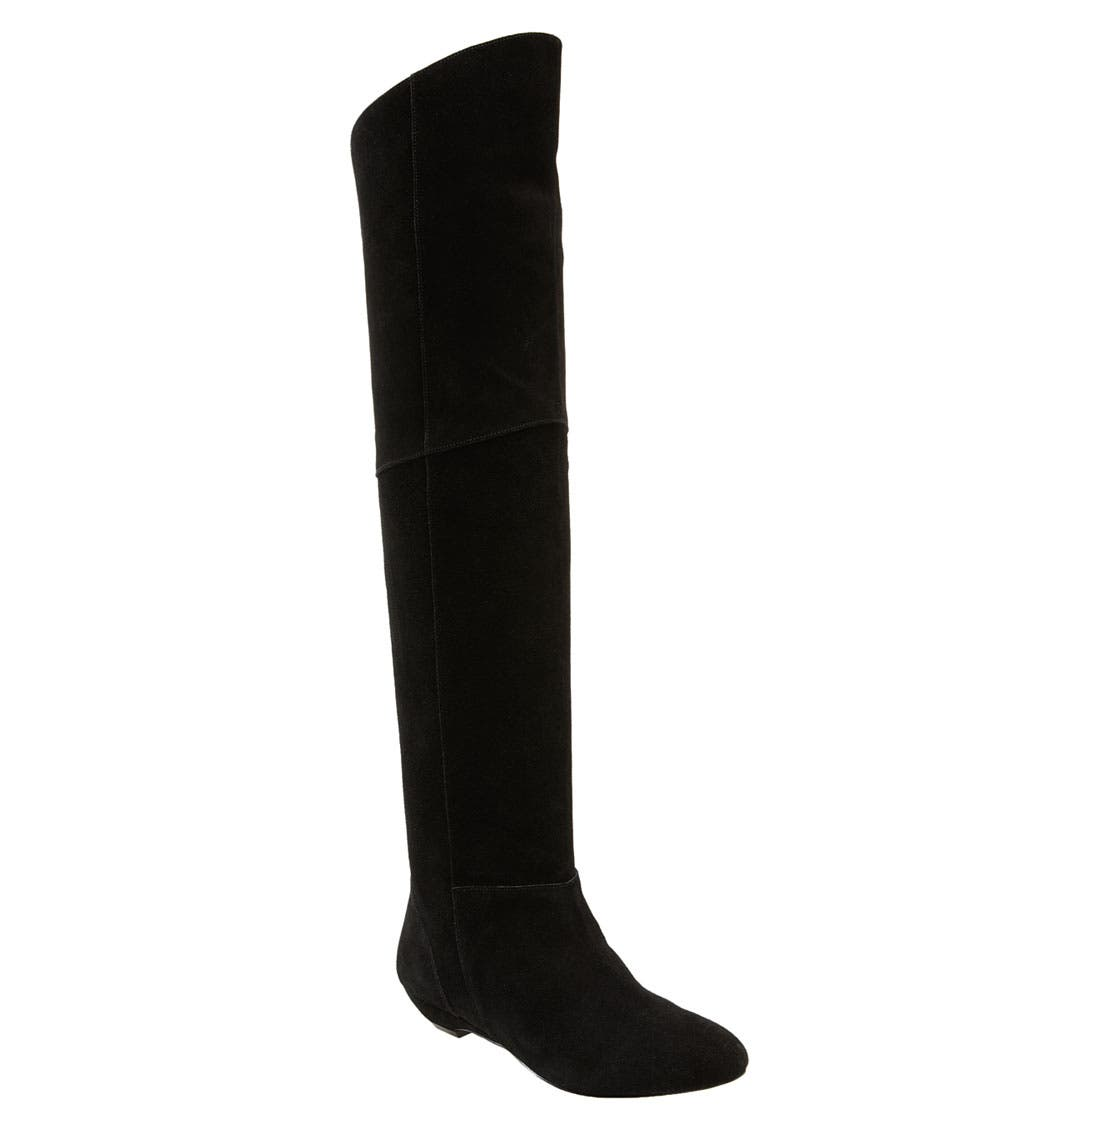 'Overrpas' Over the Knee Boot,                         Main,                         color, Black Suede